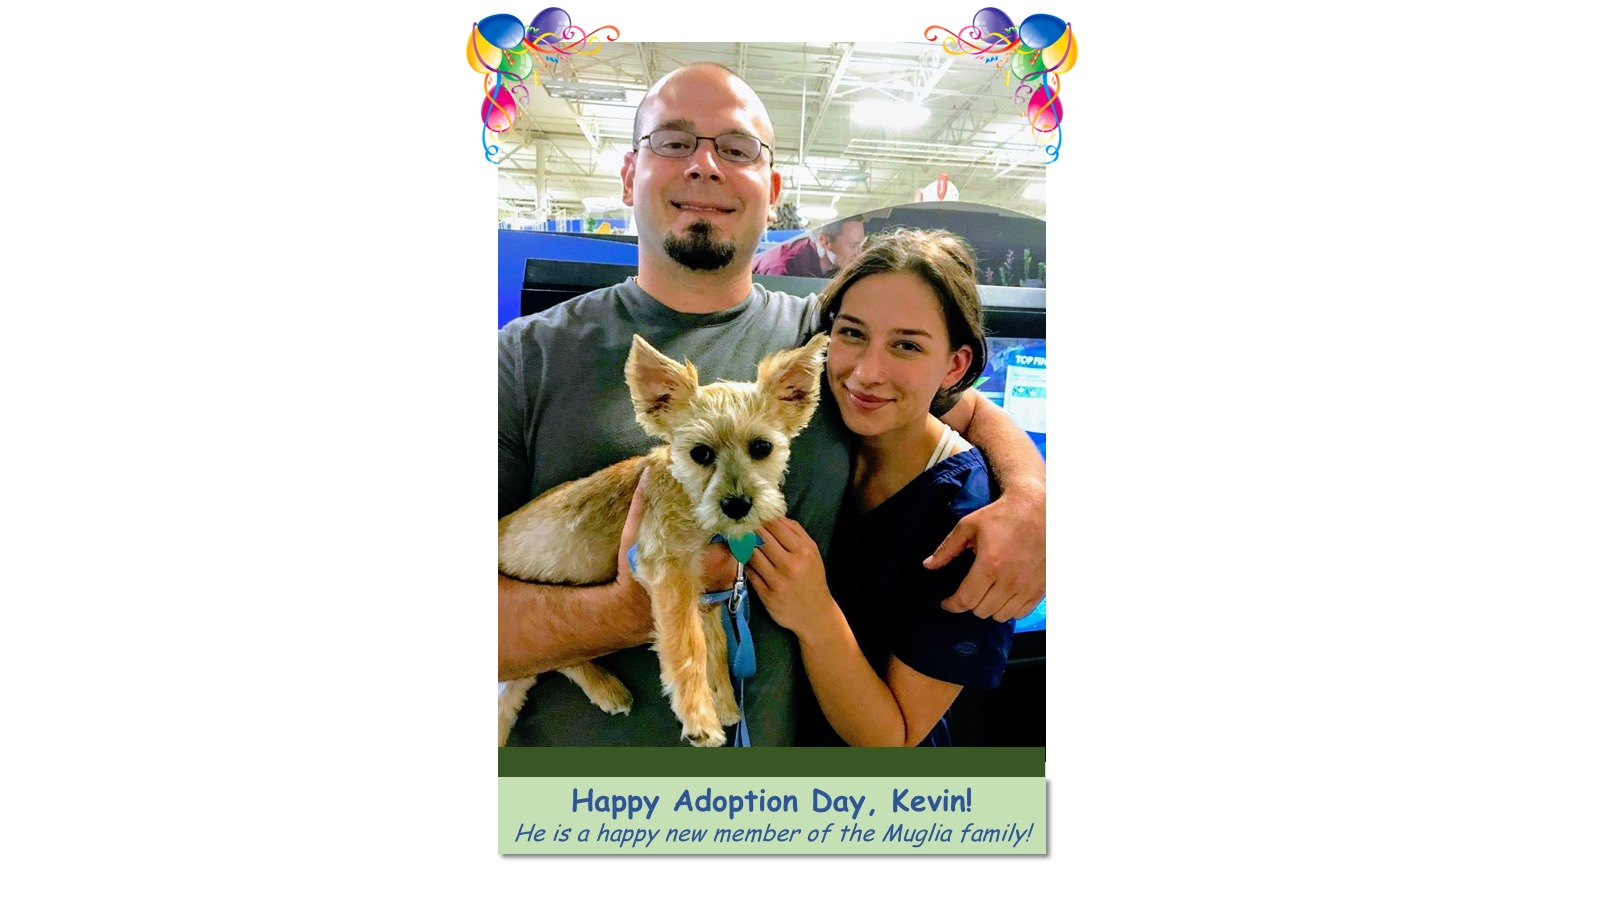 Kevin_Adoption_Photo_2018.jpg